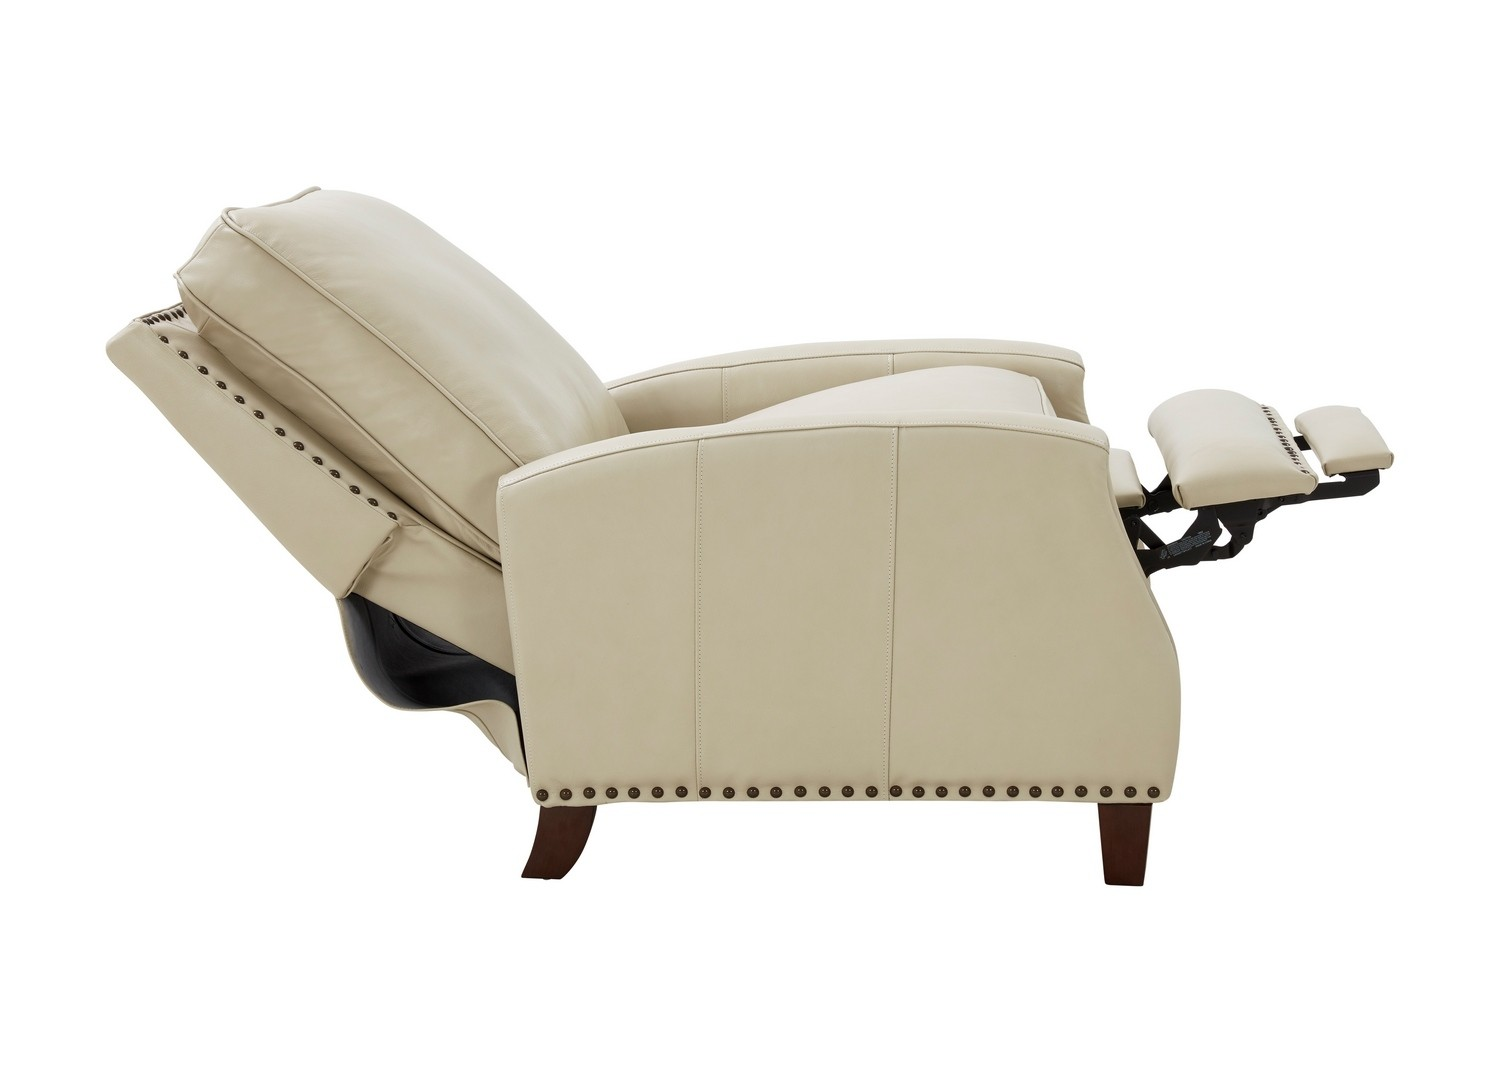 Barcalounger Melrose Recliner Chair - Barone Parchment/All Leather